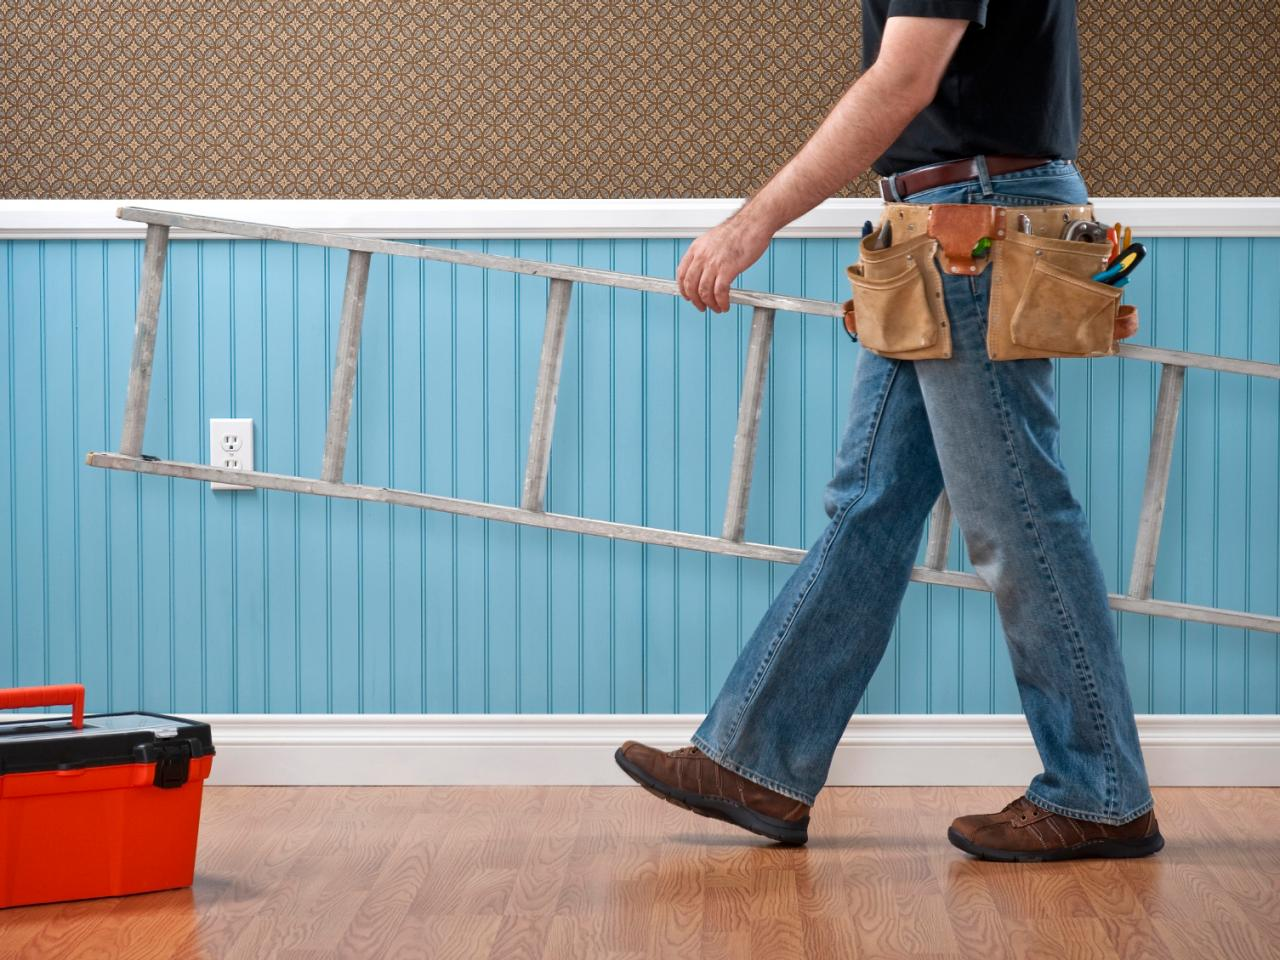 How to Choose a Remodeling Contractor | HGTV